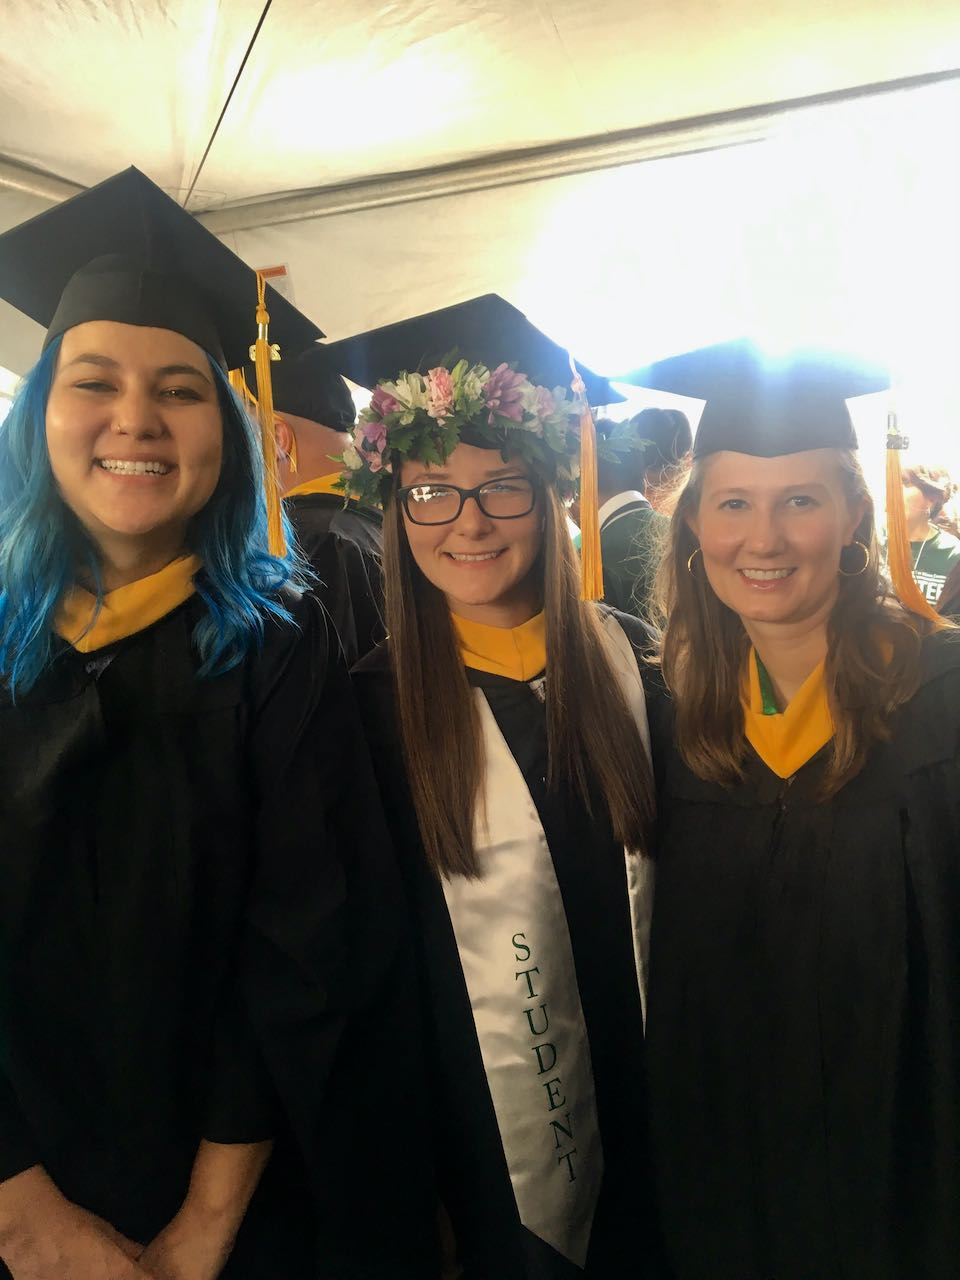 Summer Tropical Medicine Graduates Michellei Fisher, Sharon Stone, and Chelsea Nichols